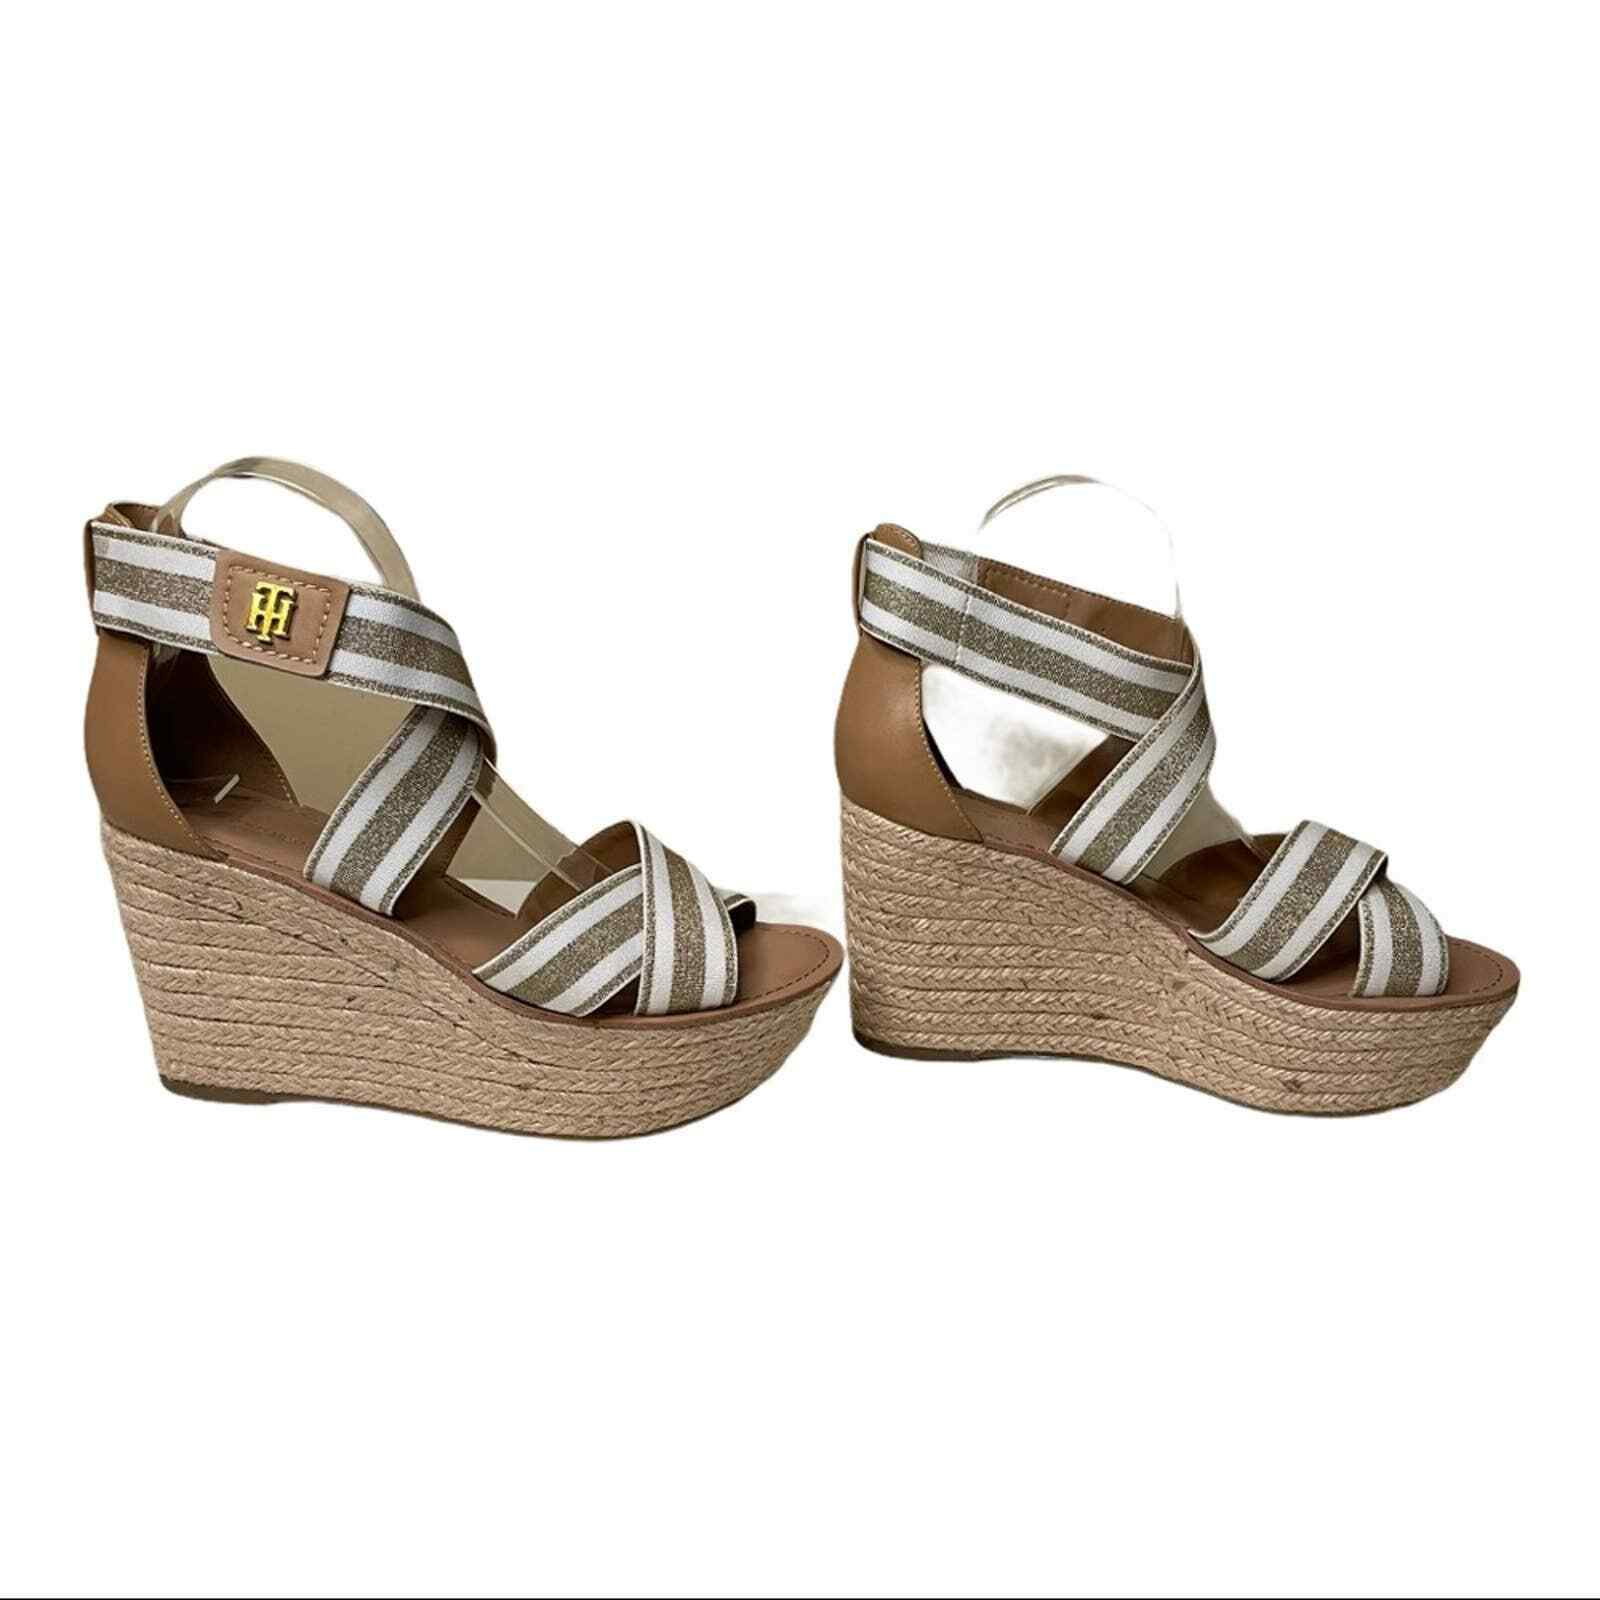 Tommy Hilfiger Theia Wedges Size 8.5 - image 2